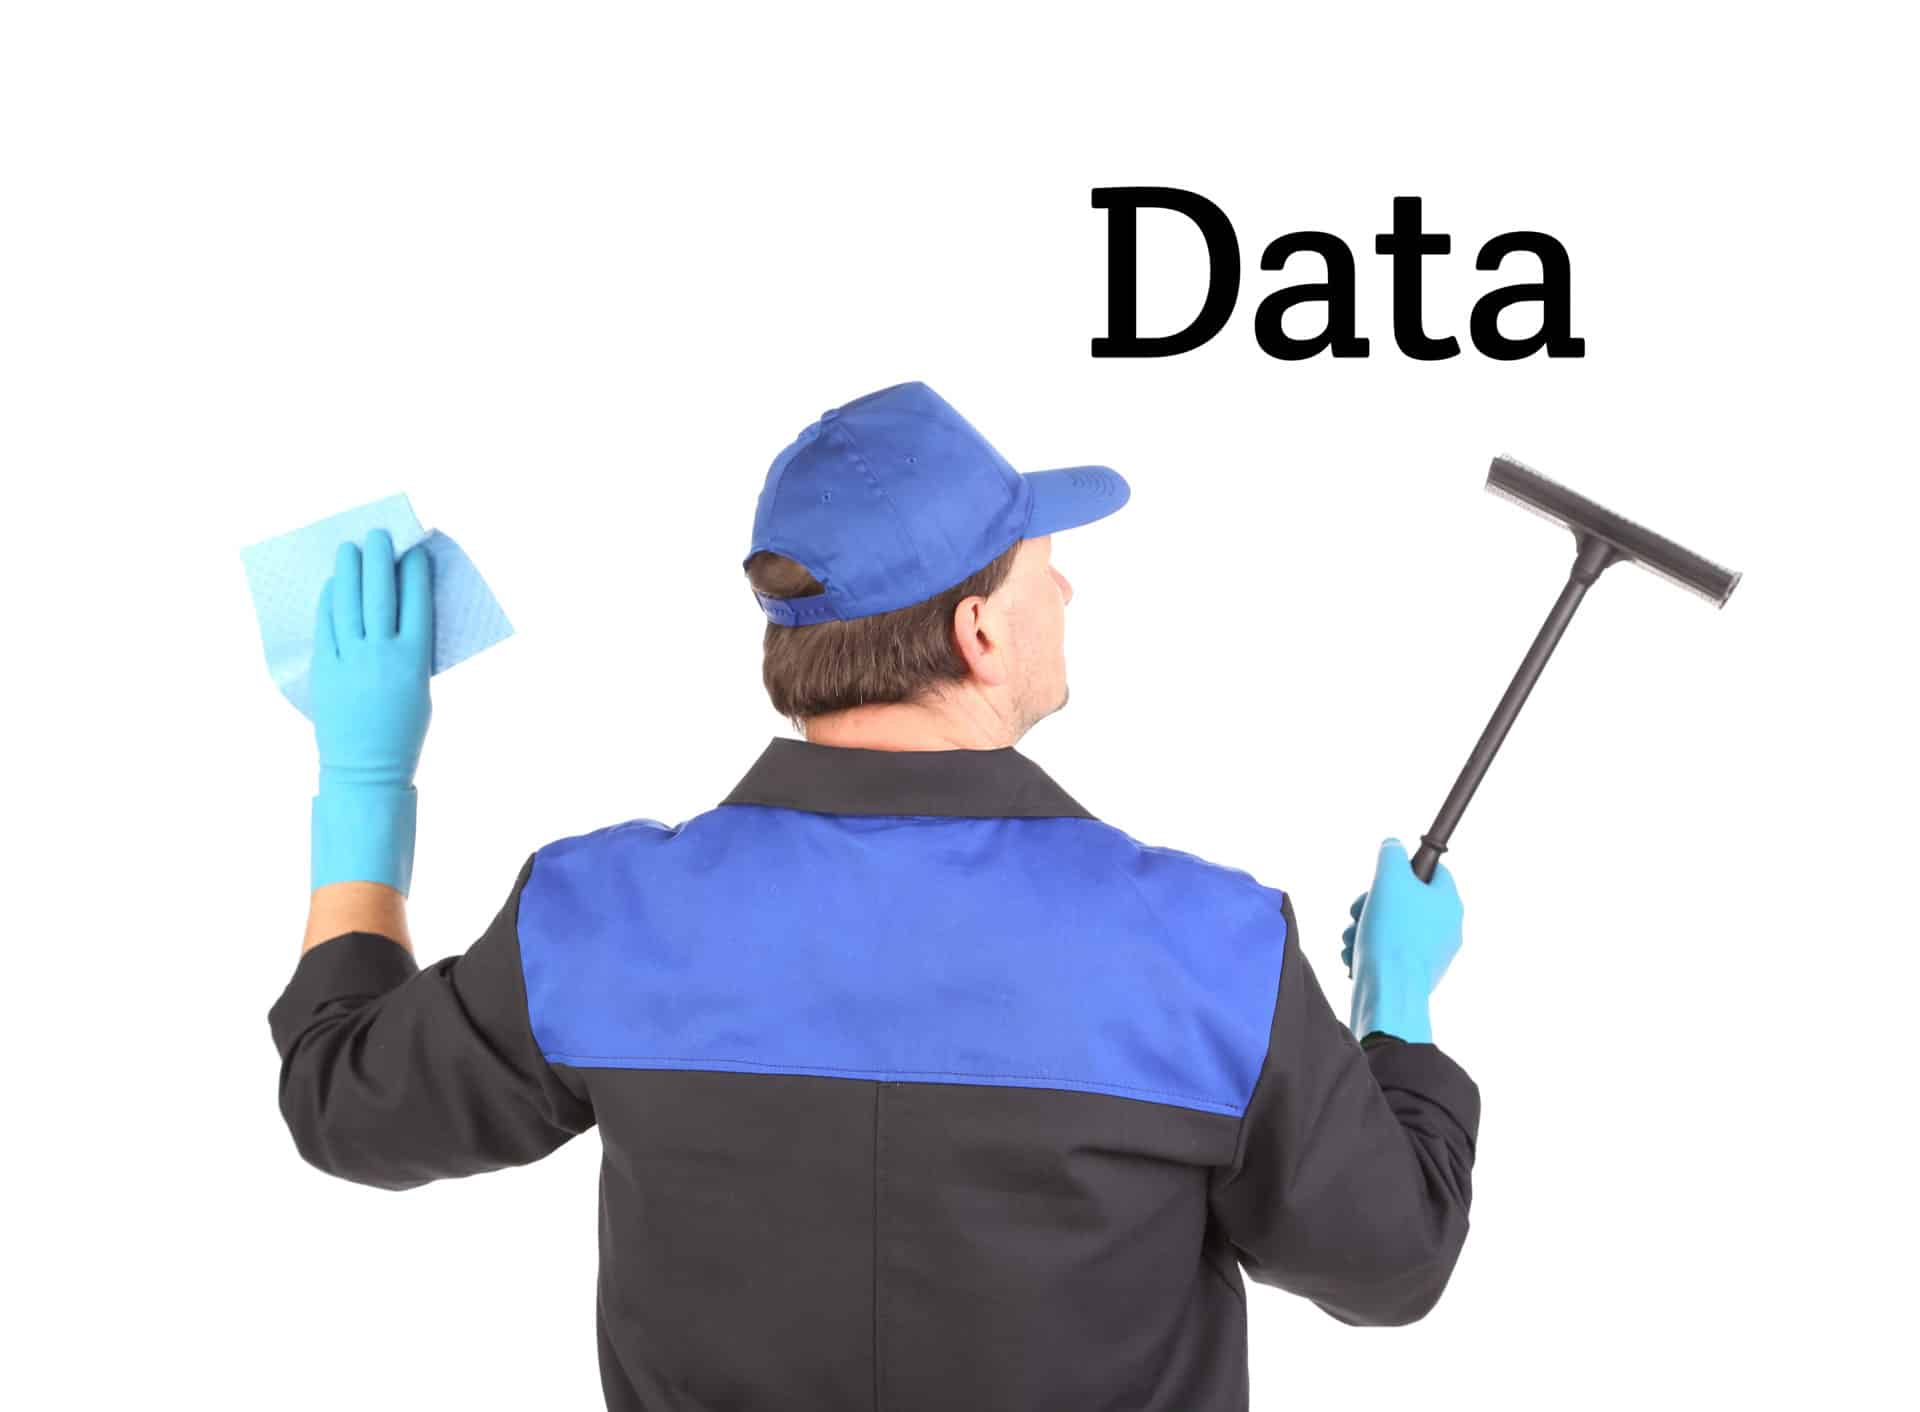 Clean your data